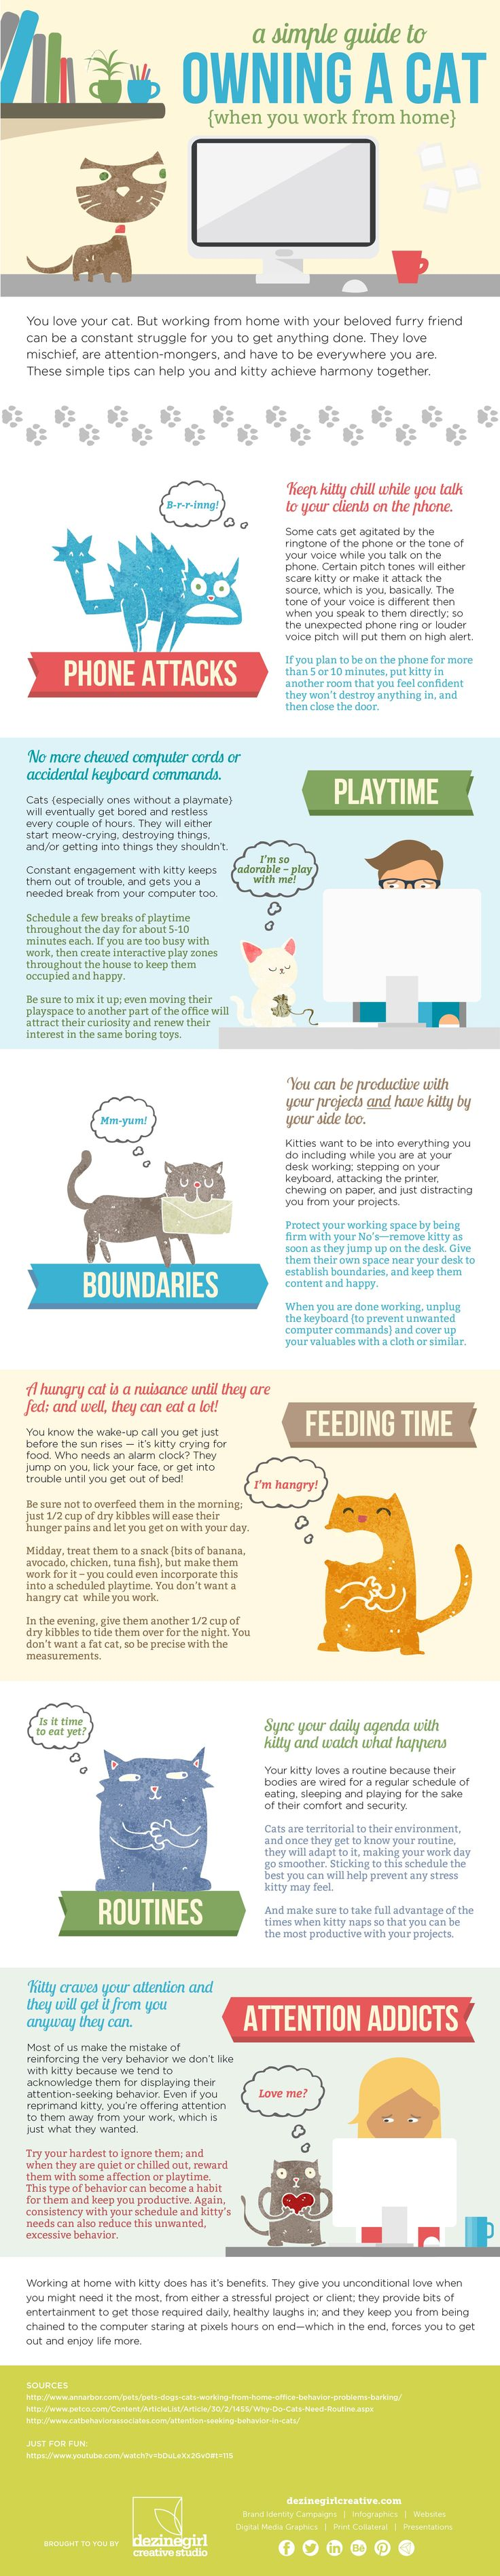 How to Work from Home with a Cat {Infographic}   at The Color Loft   design and words by #dezinegirl creative studio 02.04.15